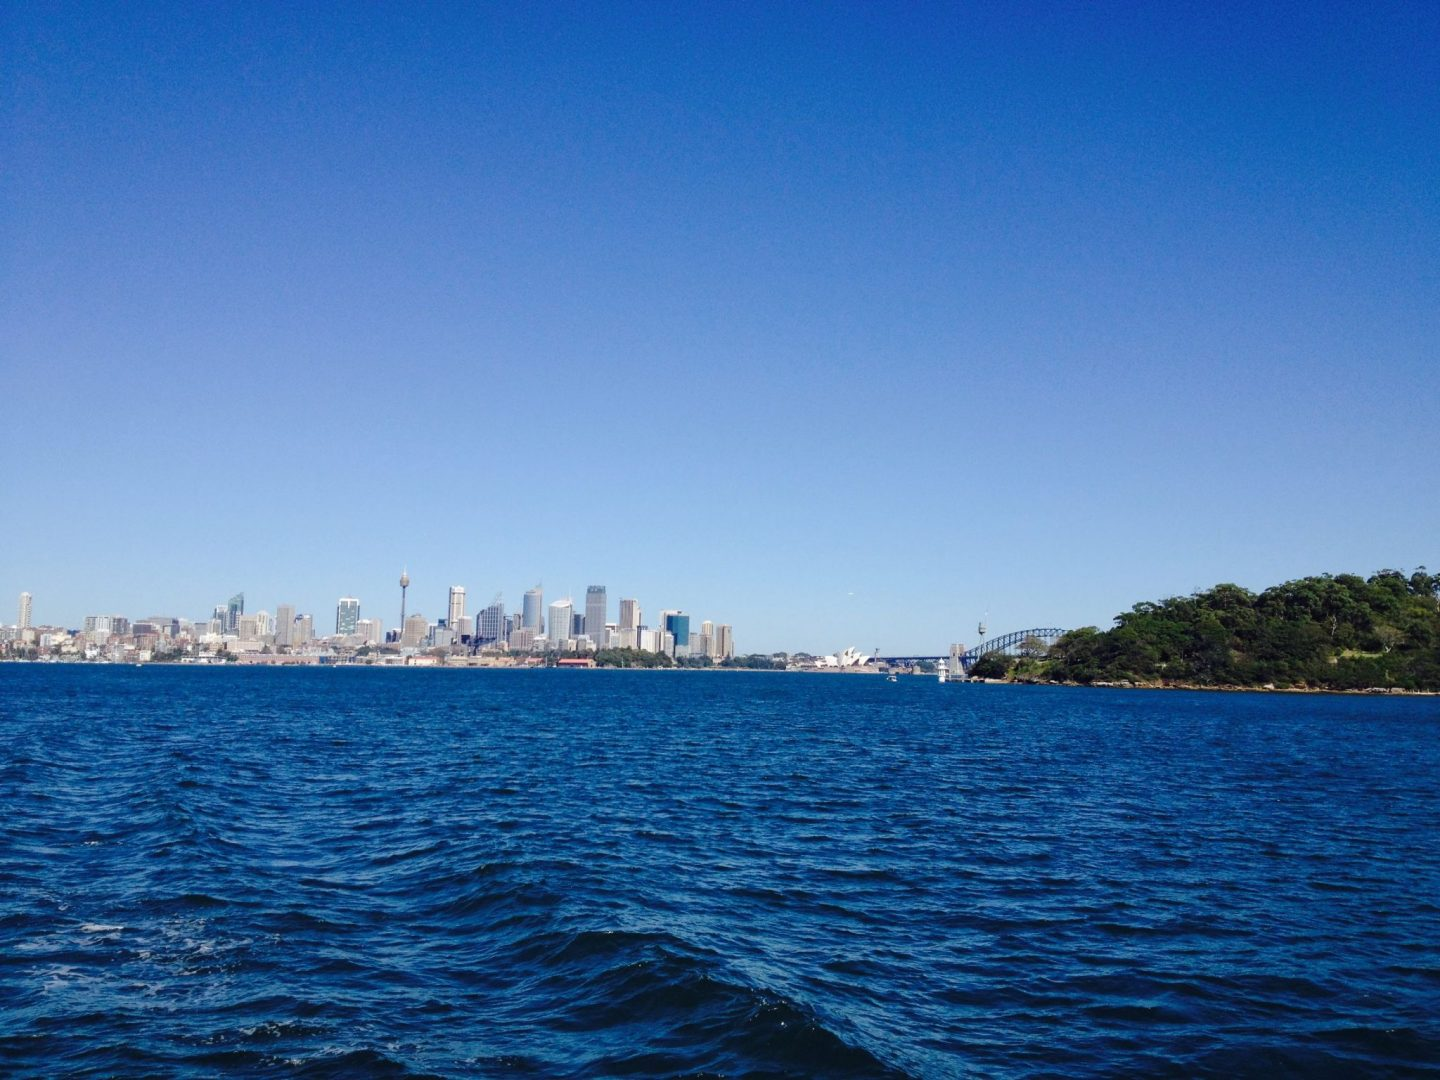 Views of Sydney from the ferry